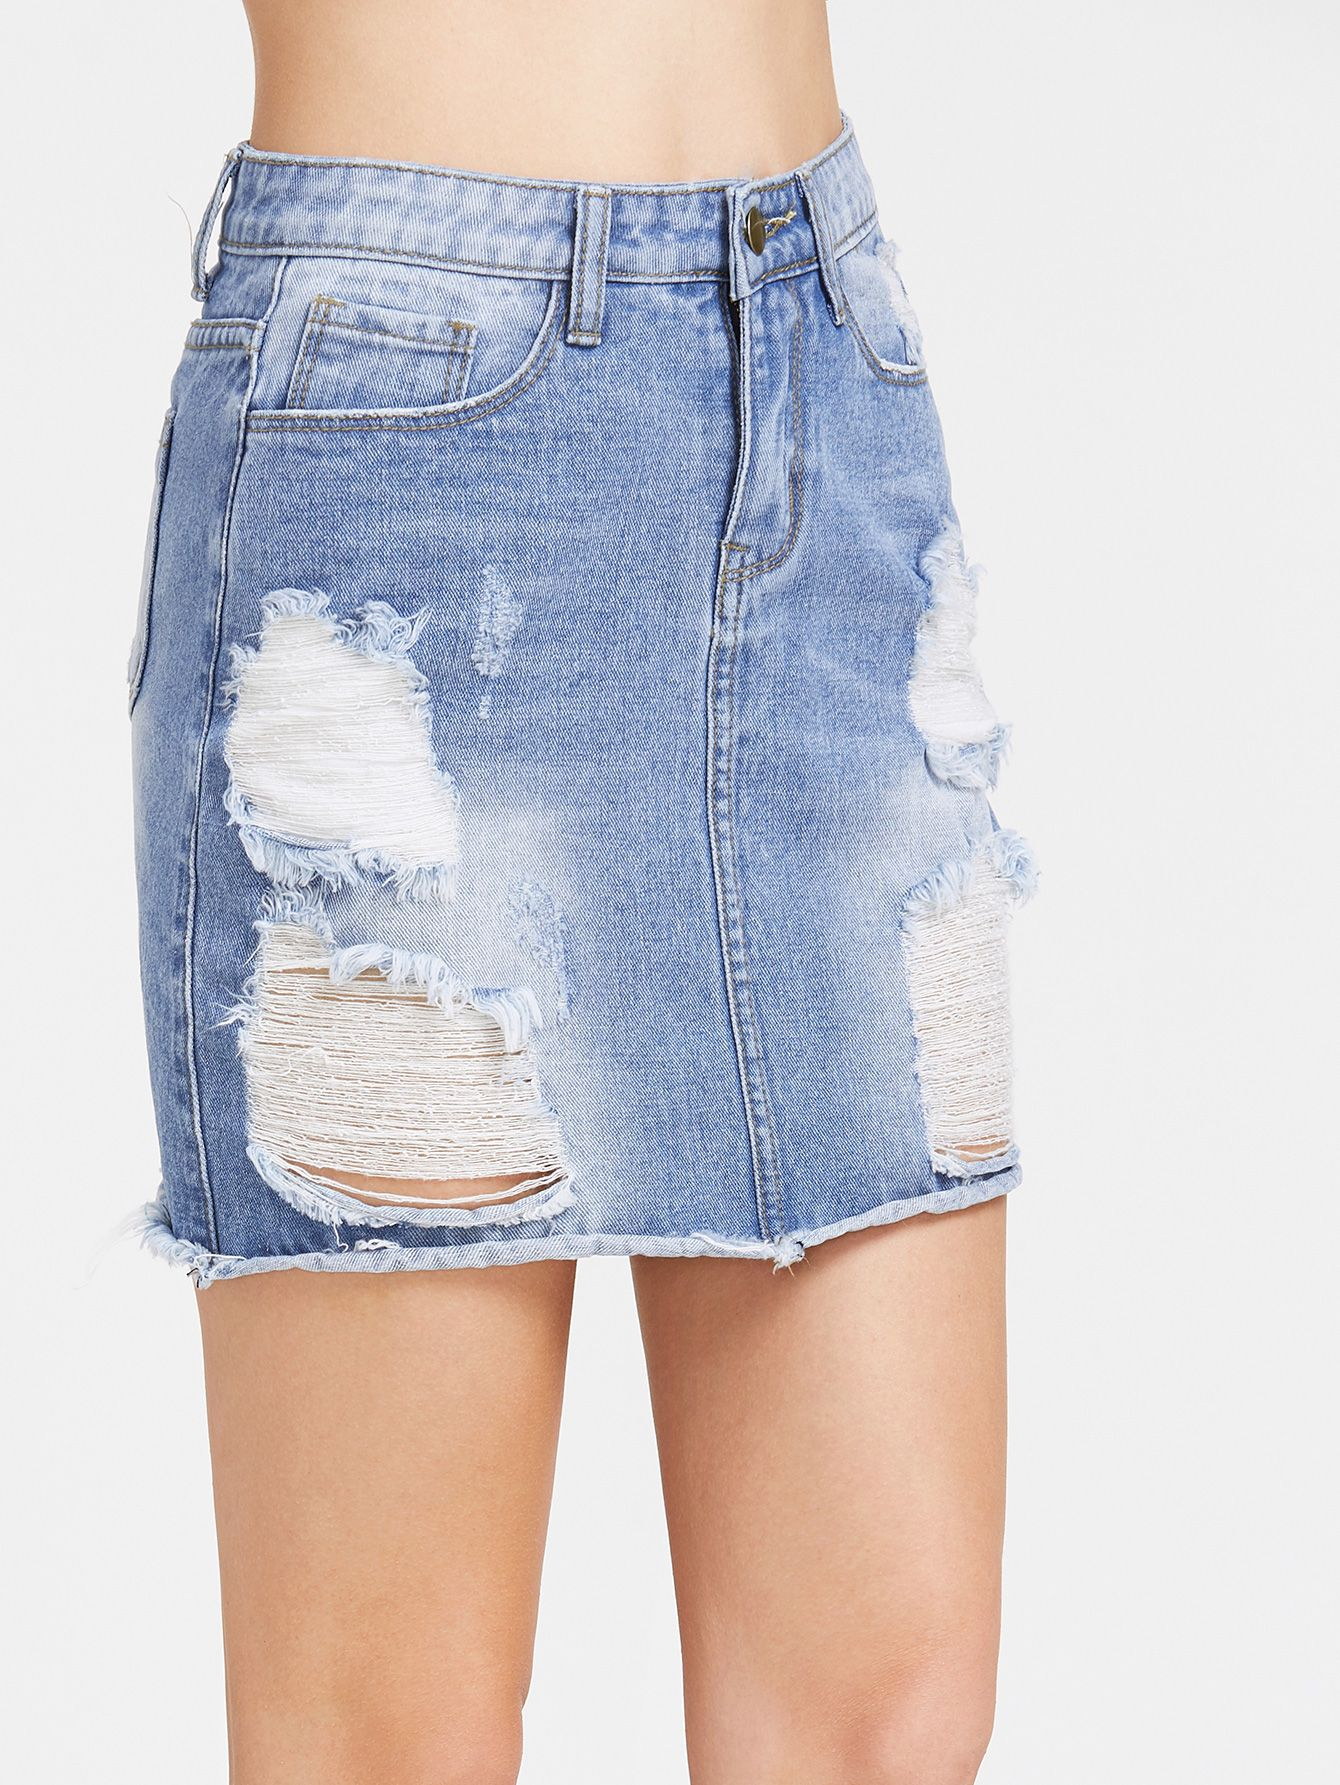 1484bbe0c7 Shop Bleach Wash Distressed Denim Skirt online. SheIn offers Bleach Wash  Distressed Denim Skirt & more to fit your fashionable needs.